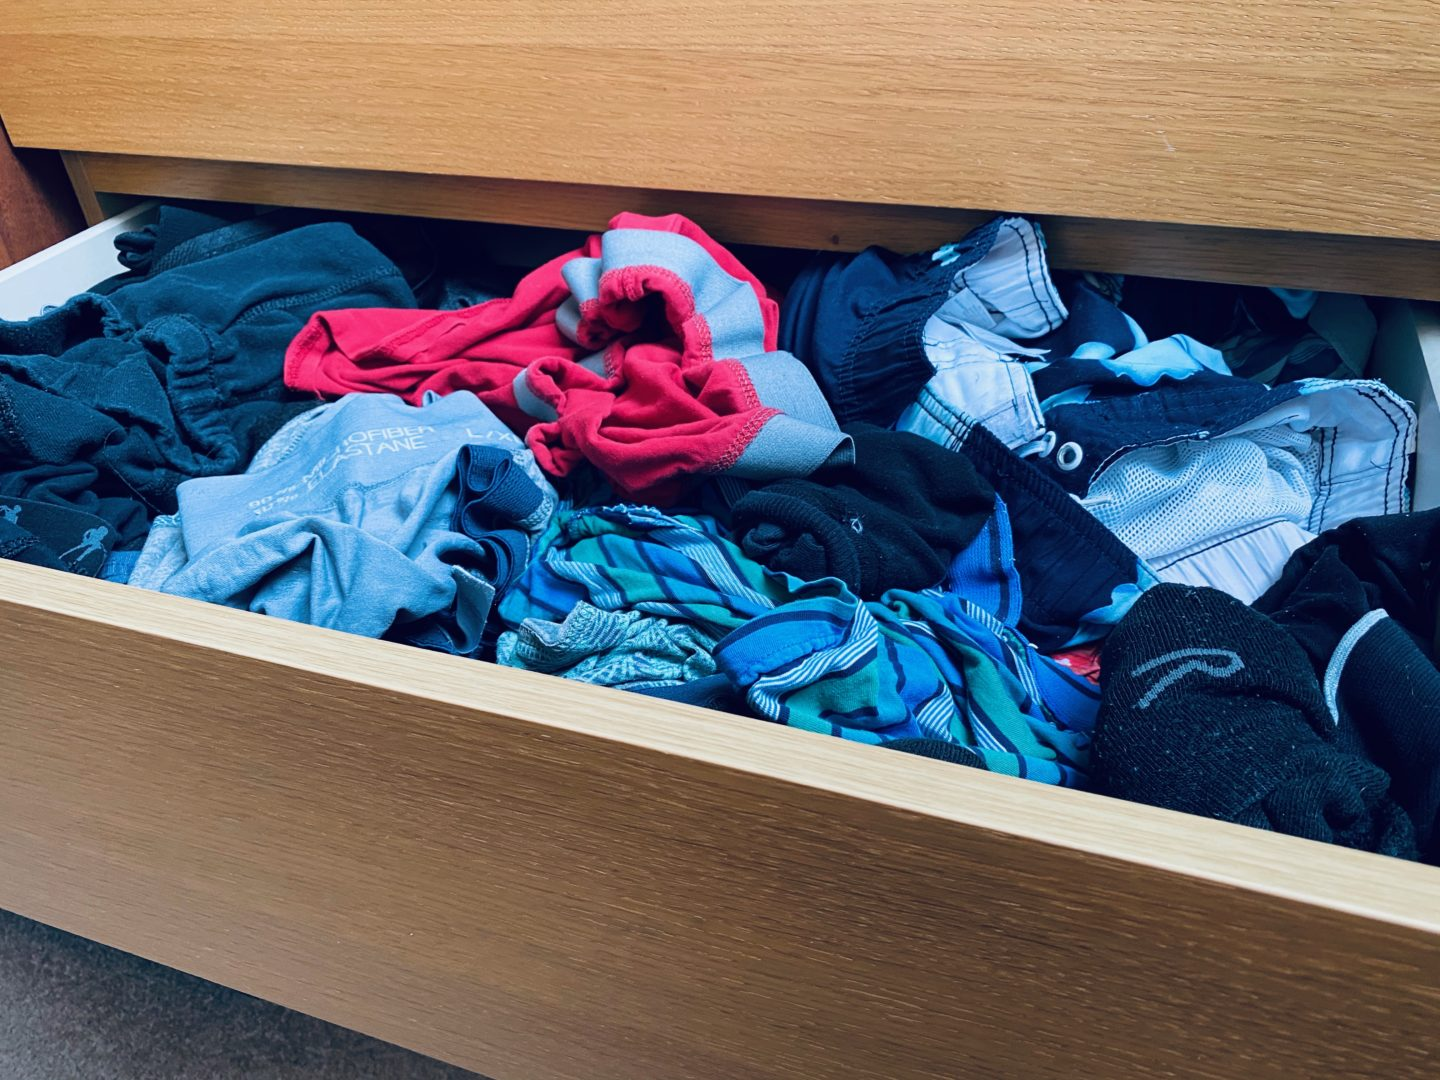 AD: Taking back control of mornings for only £51.75 with IKEA organisation hacks. Adult's drawer pre organisation.